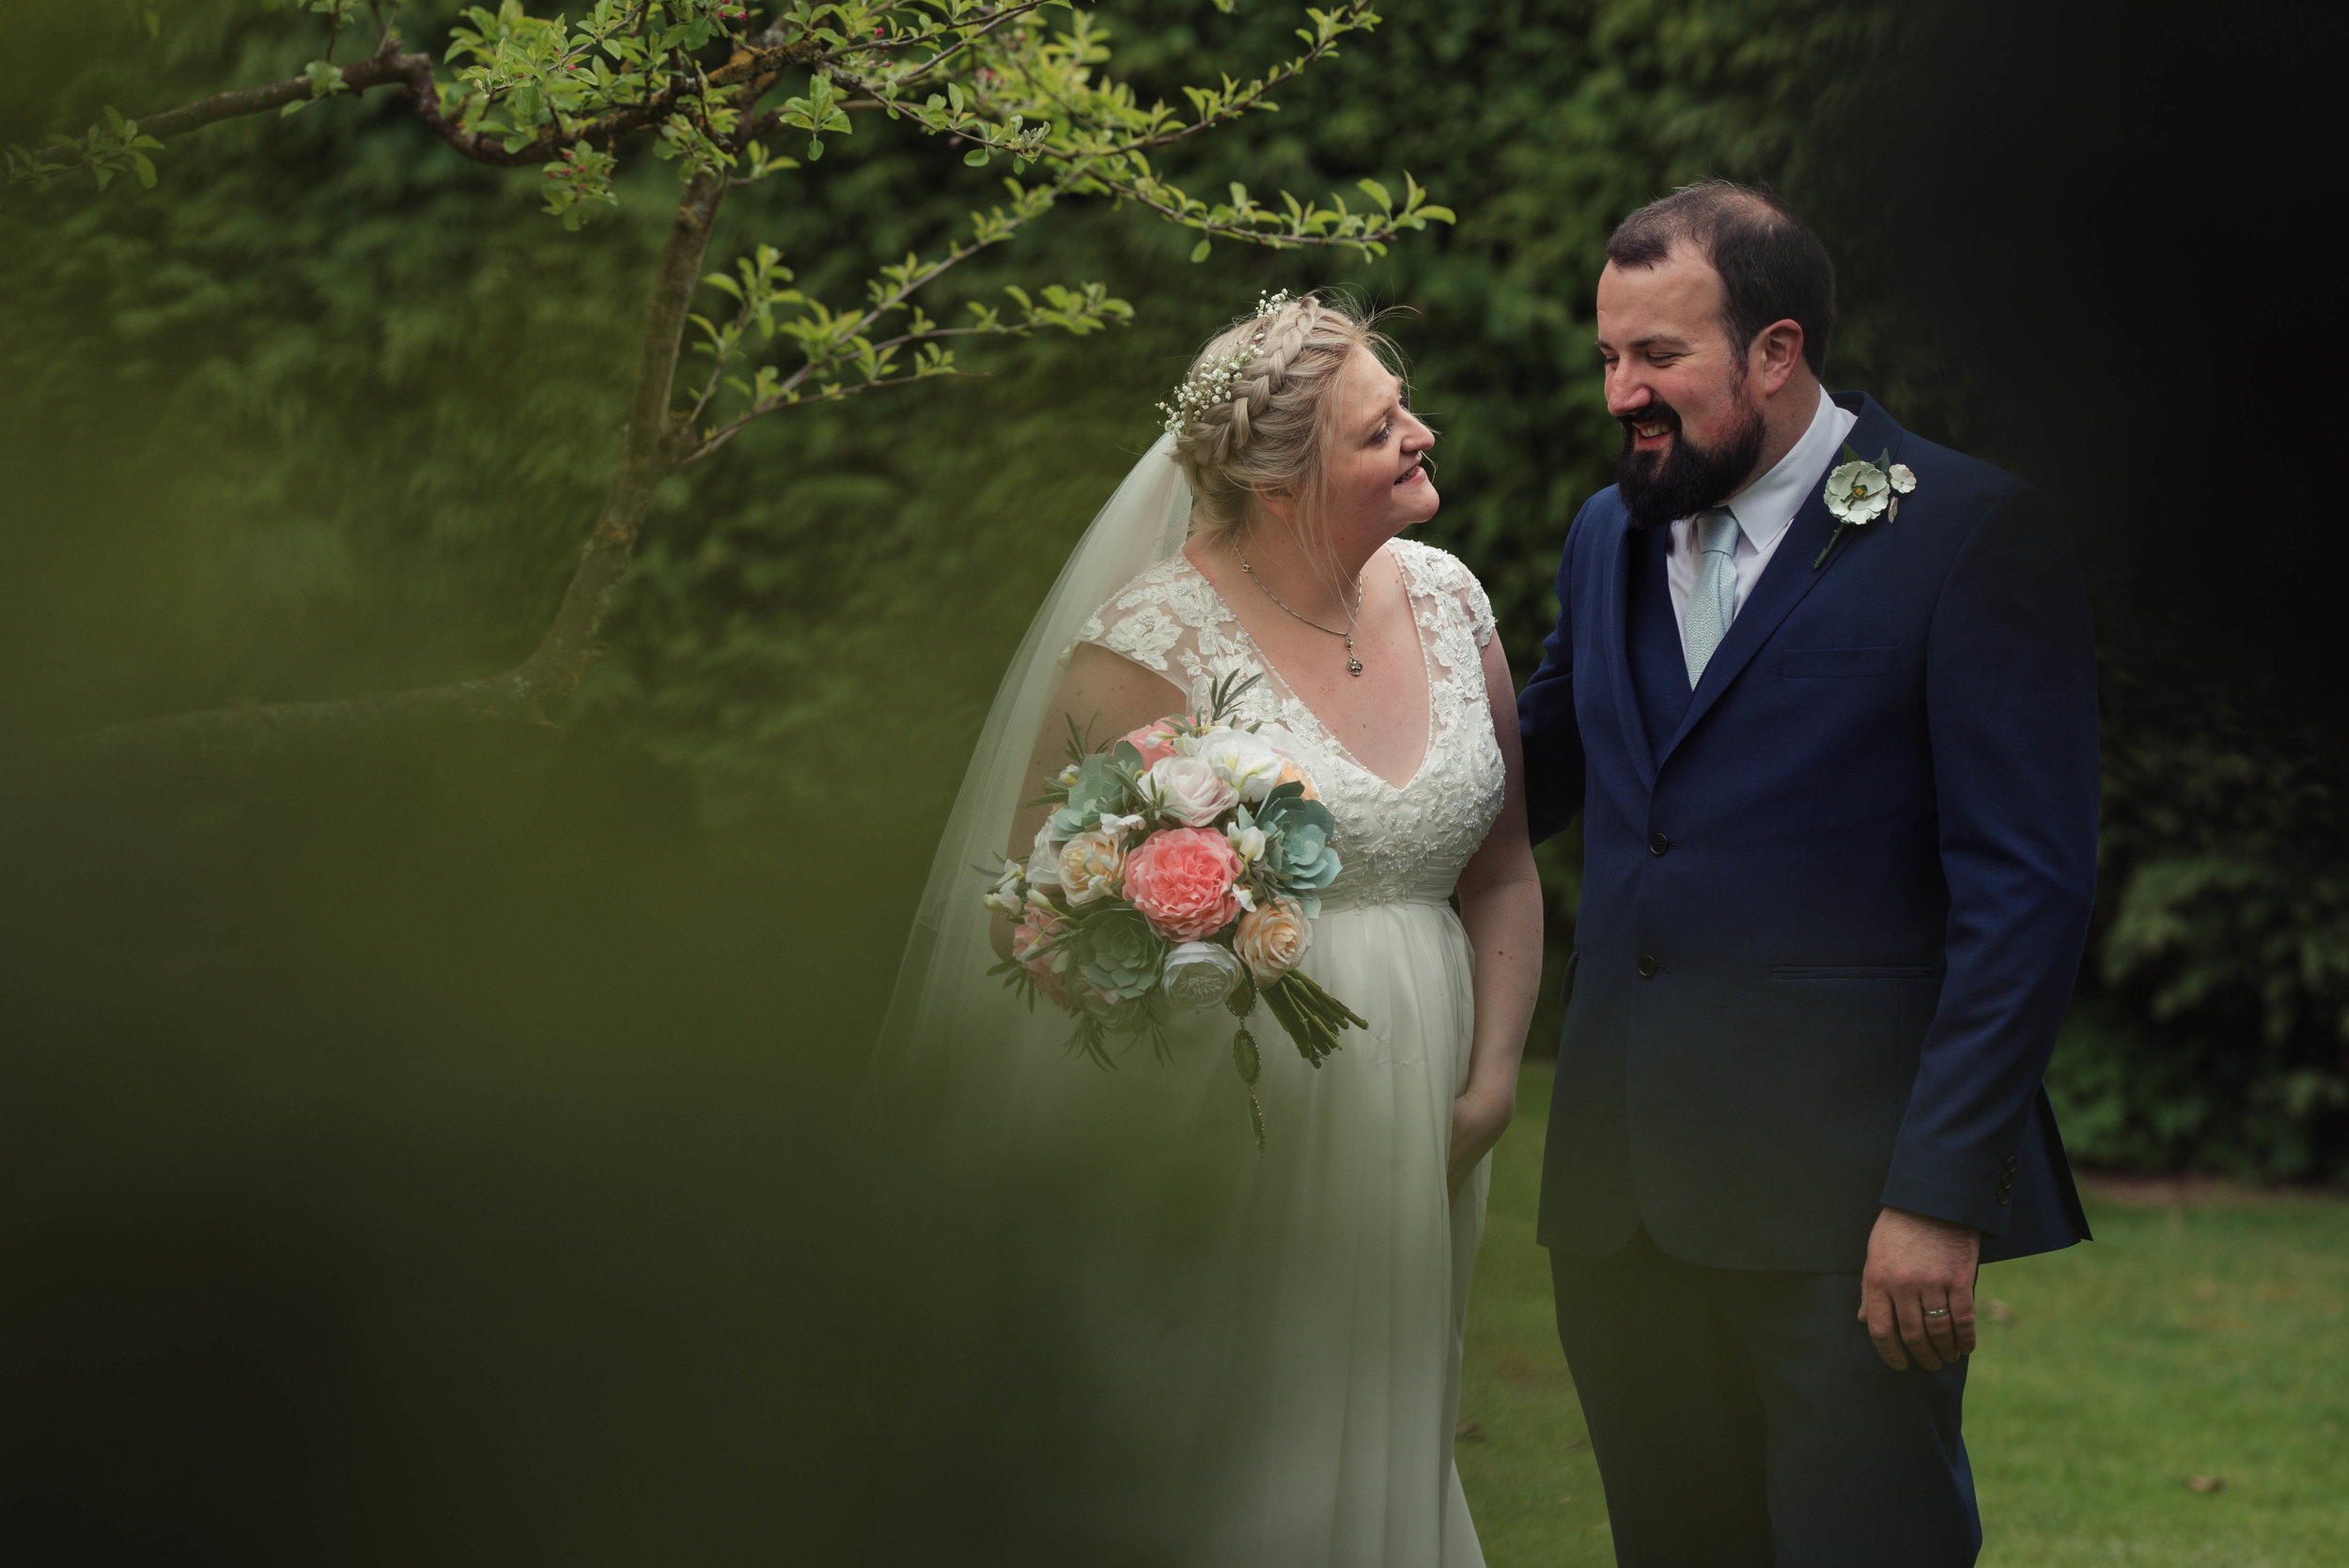 The bride and groom pose for their cumbria wedding photography